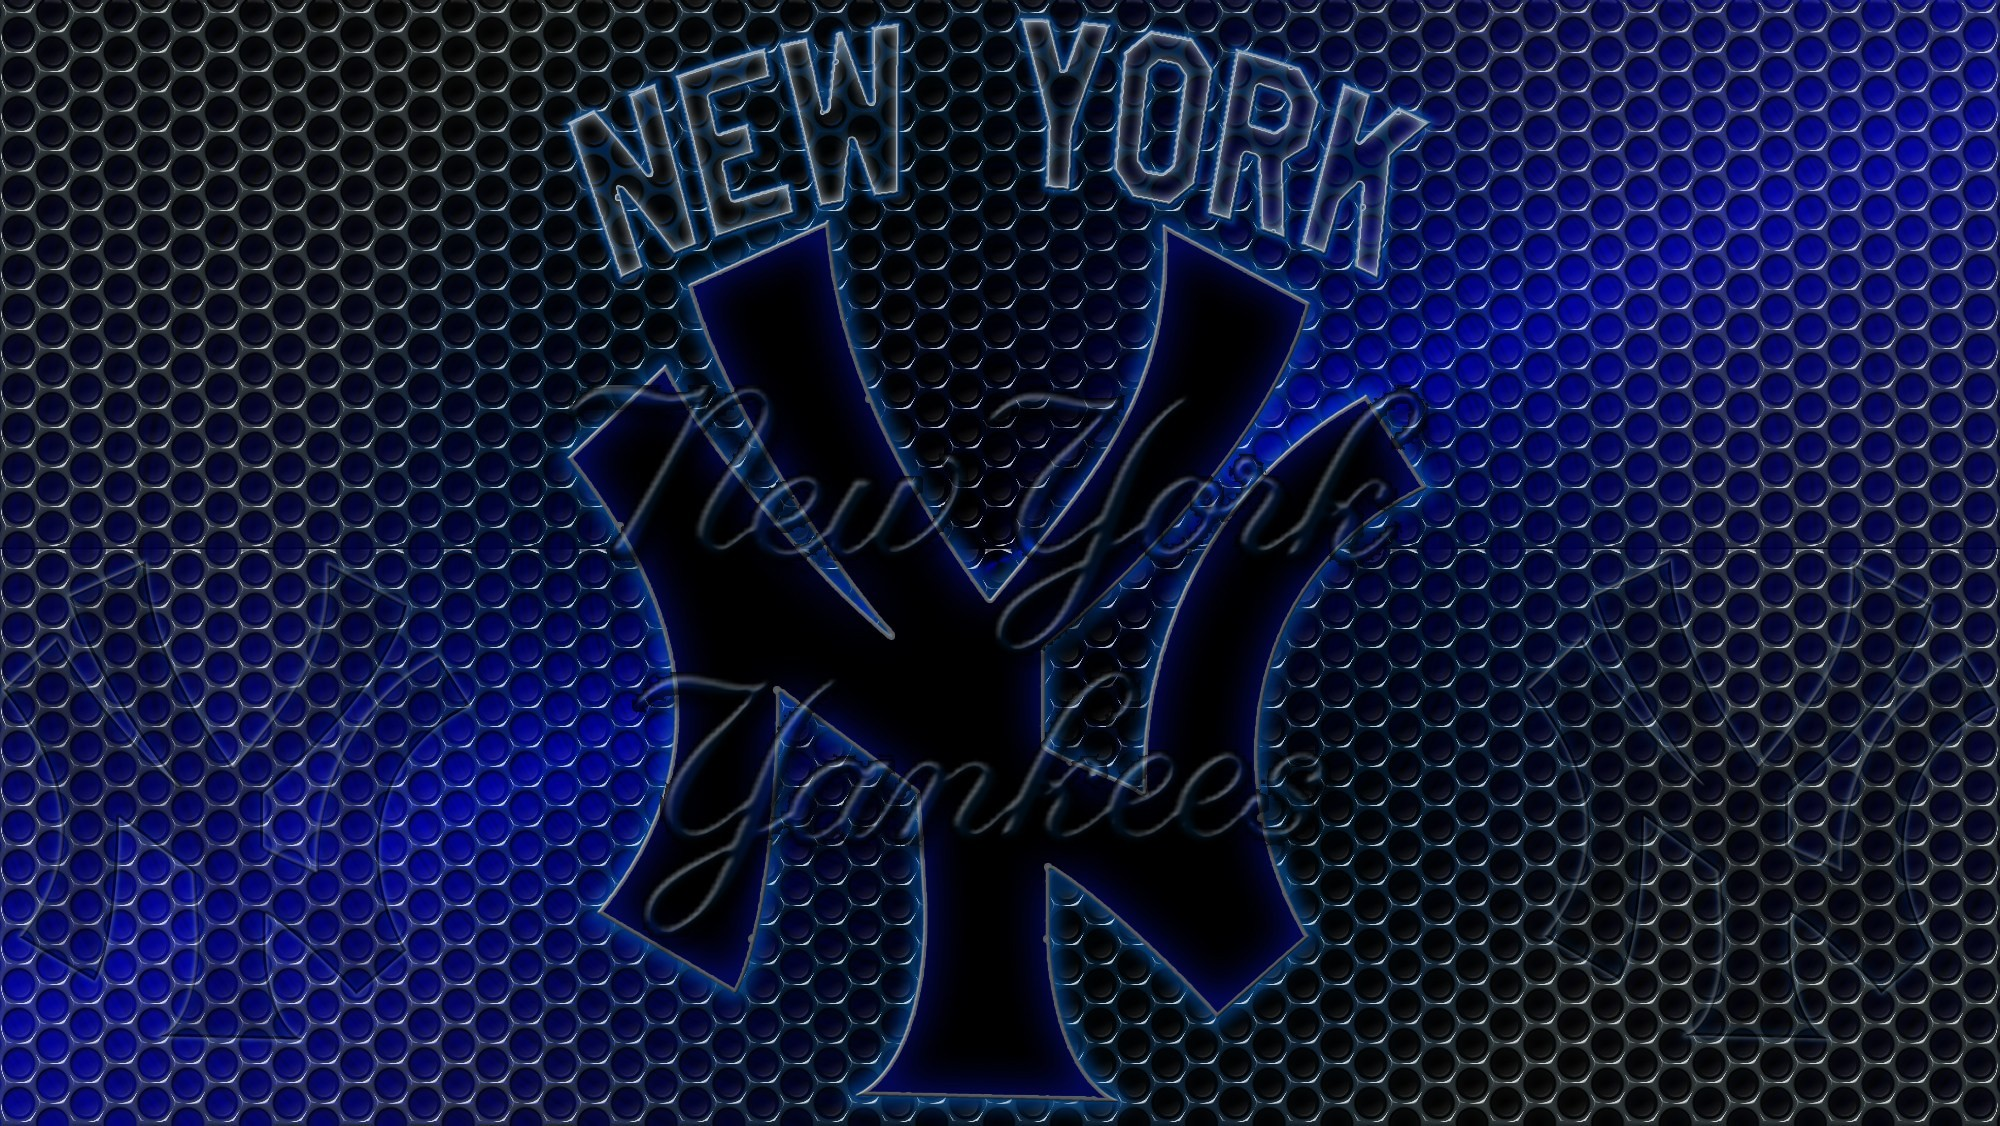 new york yankees and economics Brian mcguire cashman (born july 3, 1967) is an american baseball executive for the new york yankees of major league baseball he has served as the general manager and senior vice president of the yankees since 1998.